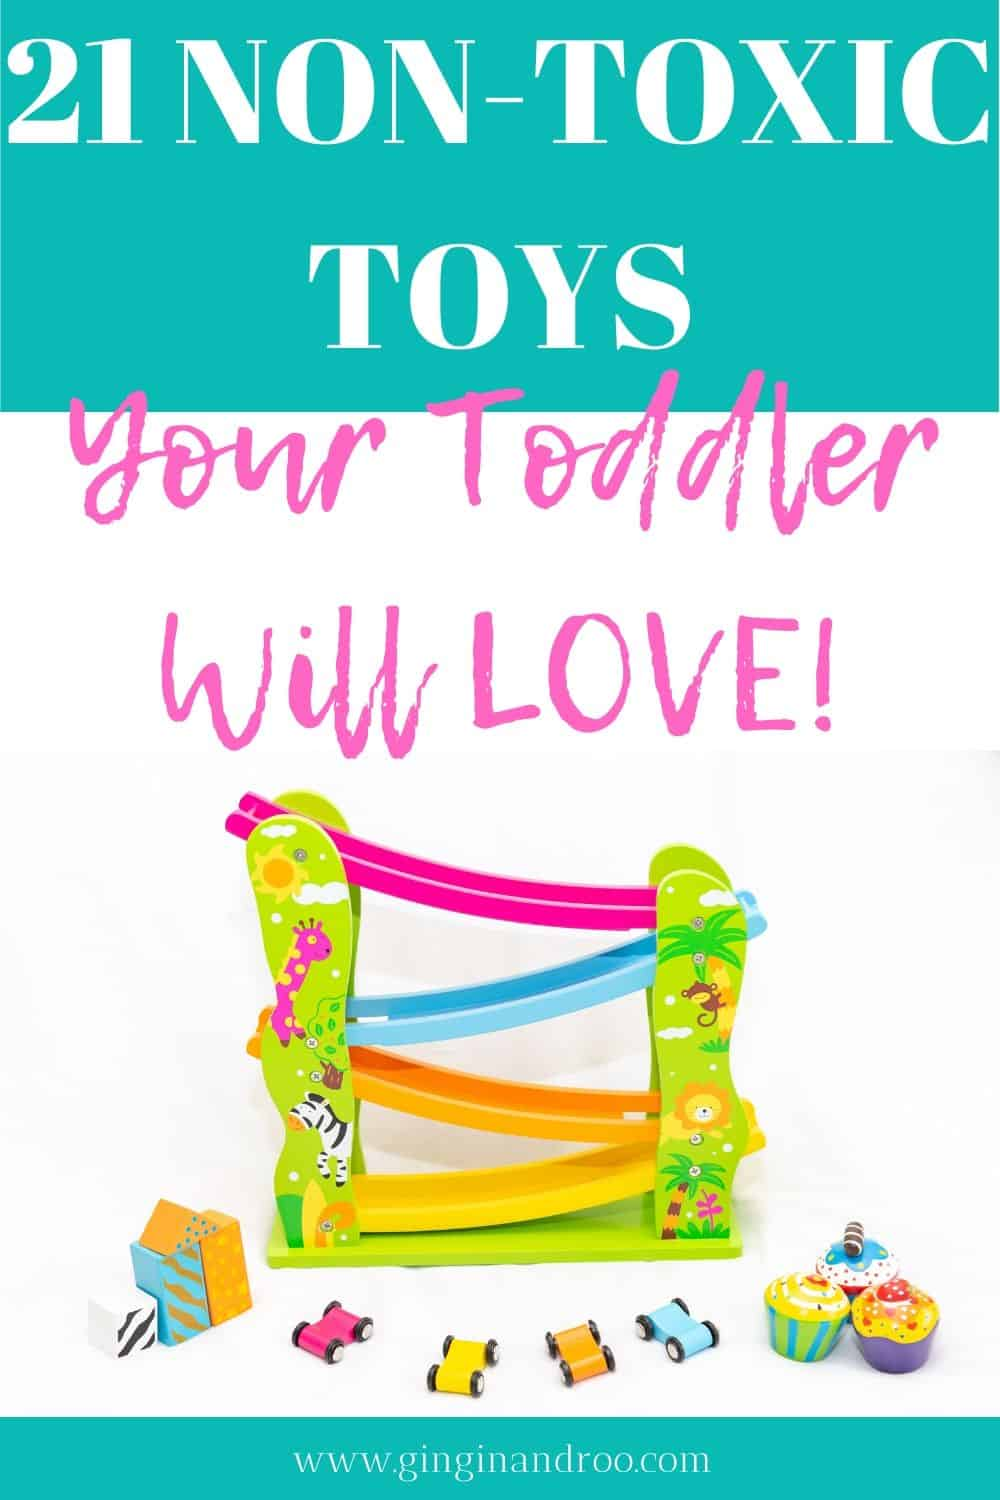 21 Non Toxic Toys For Toddlers. The BEST toxic free toys your toddler will  LOVE.